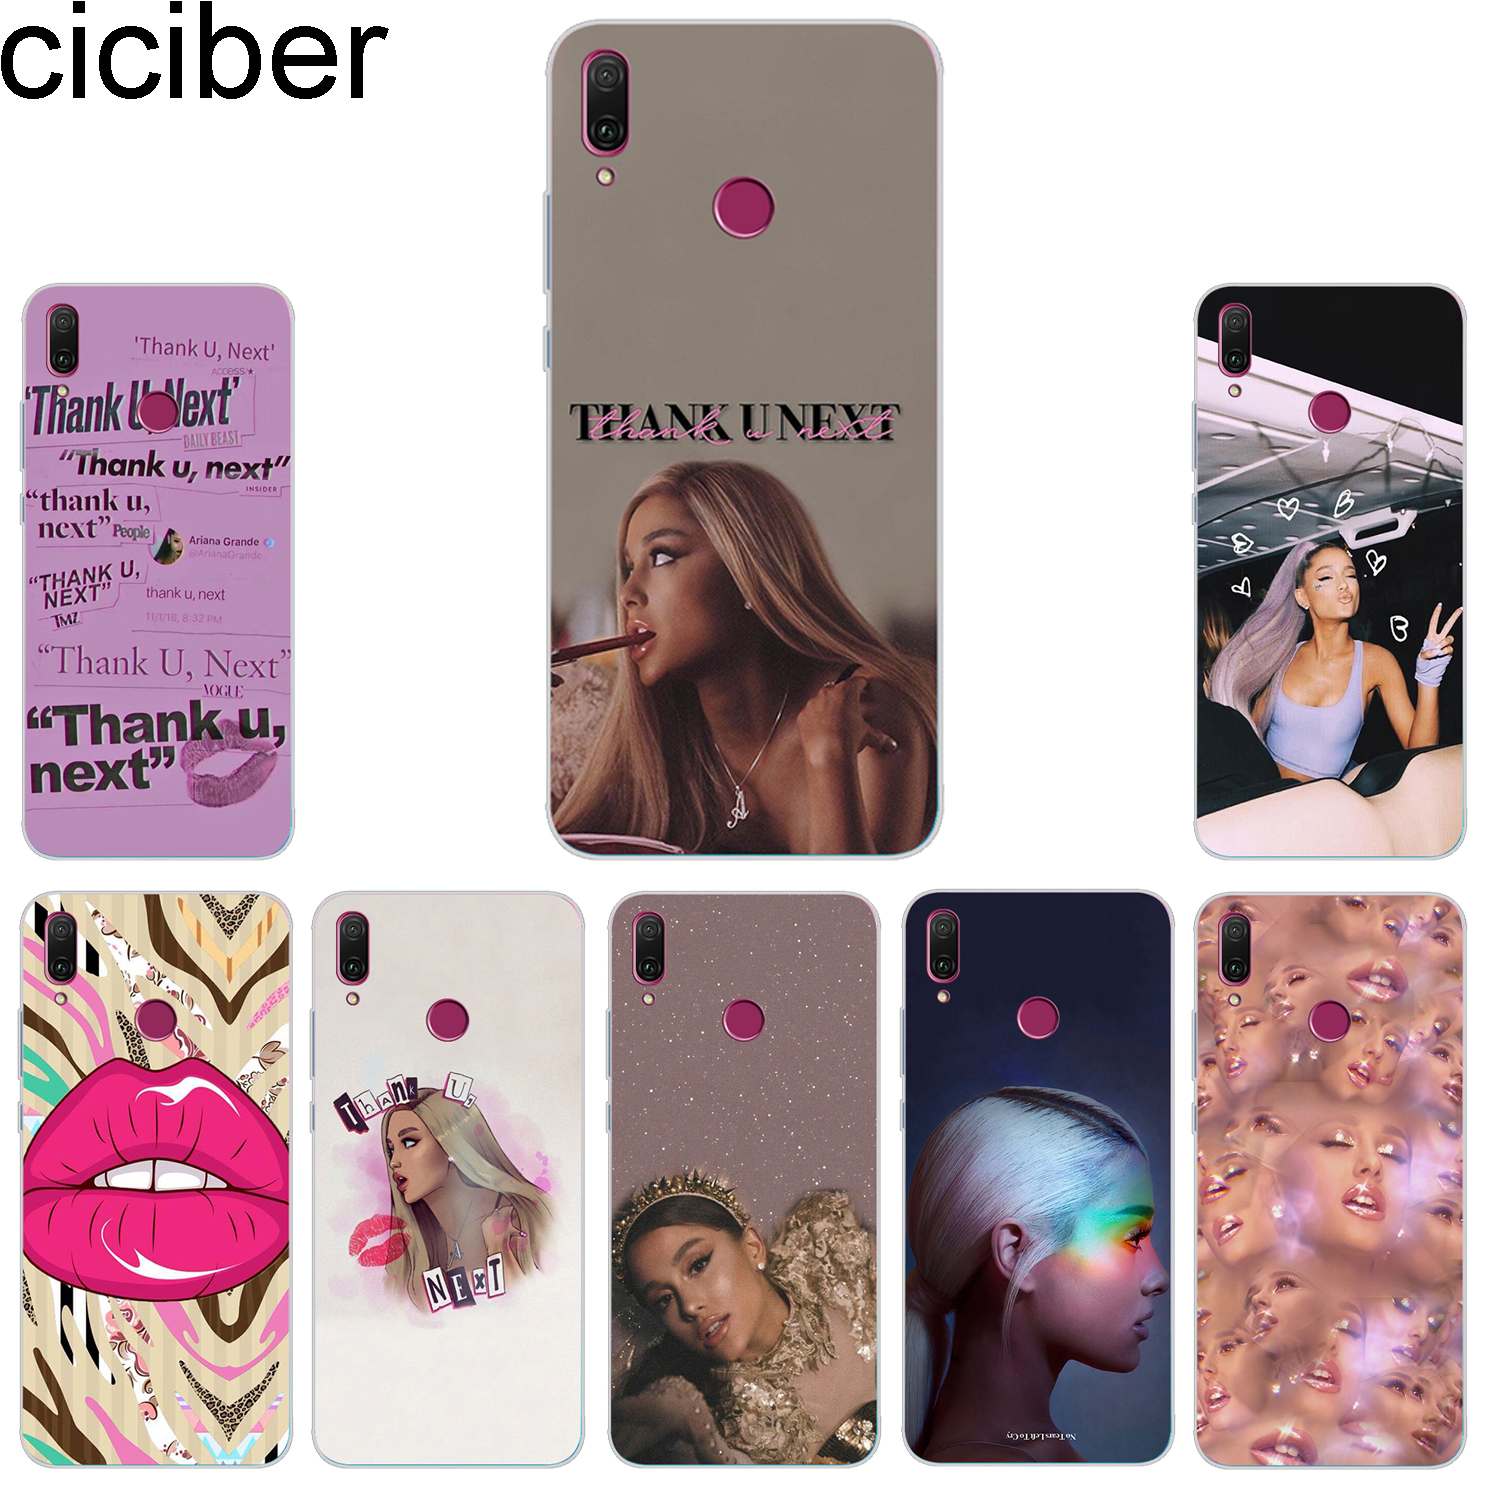 Buy ciciber Phone Case for Huawei Honor 10 9 8 lite 7A 8C 8X Note V10 Play Y9 Y7 Y6 Y5 Y3 Pro Prime 2017 2018 2019 Ariana Grande for only 1.2 USD